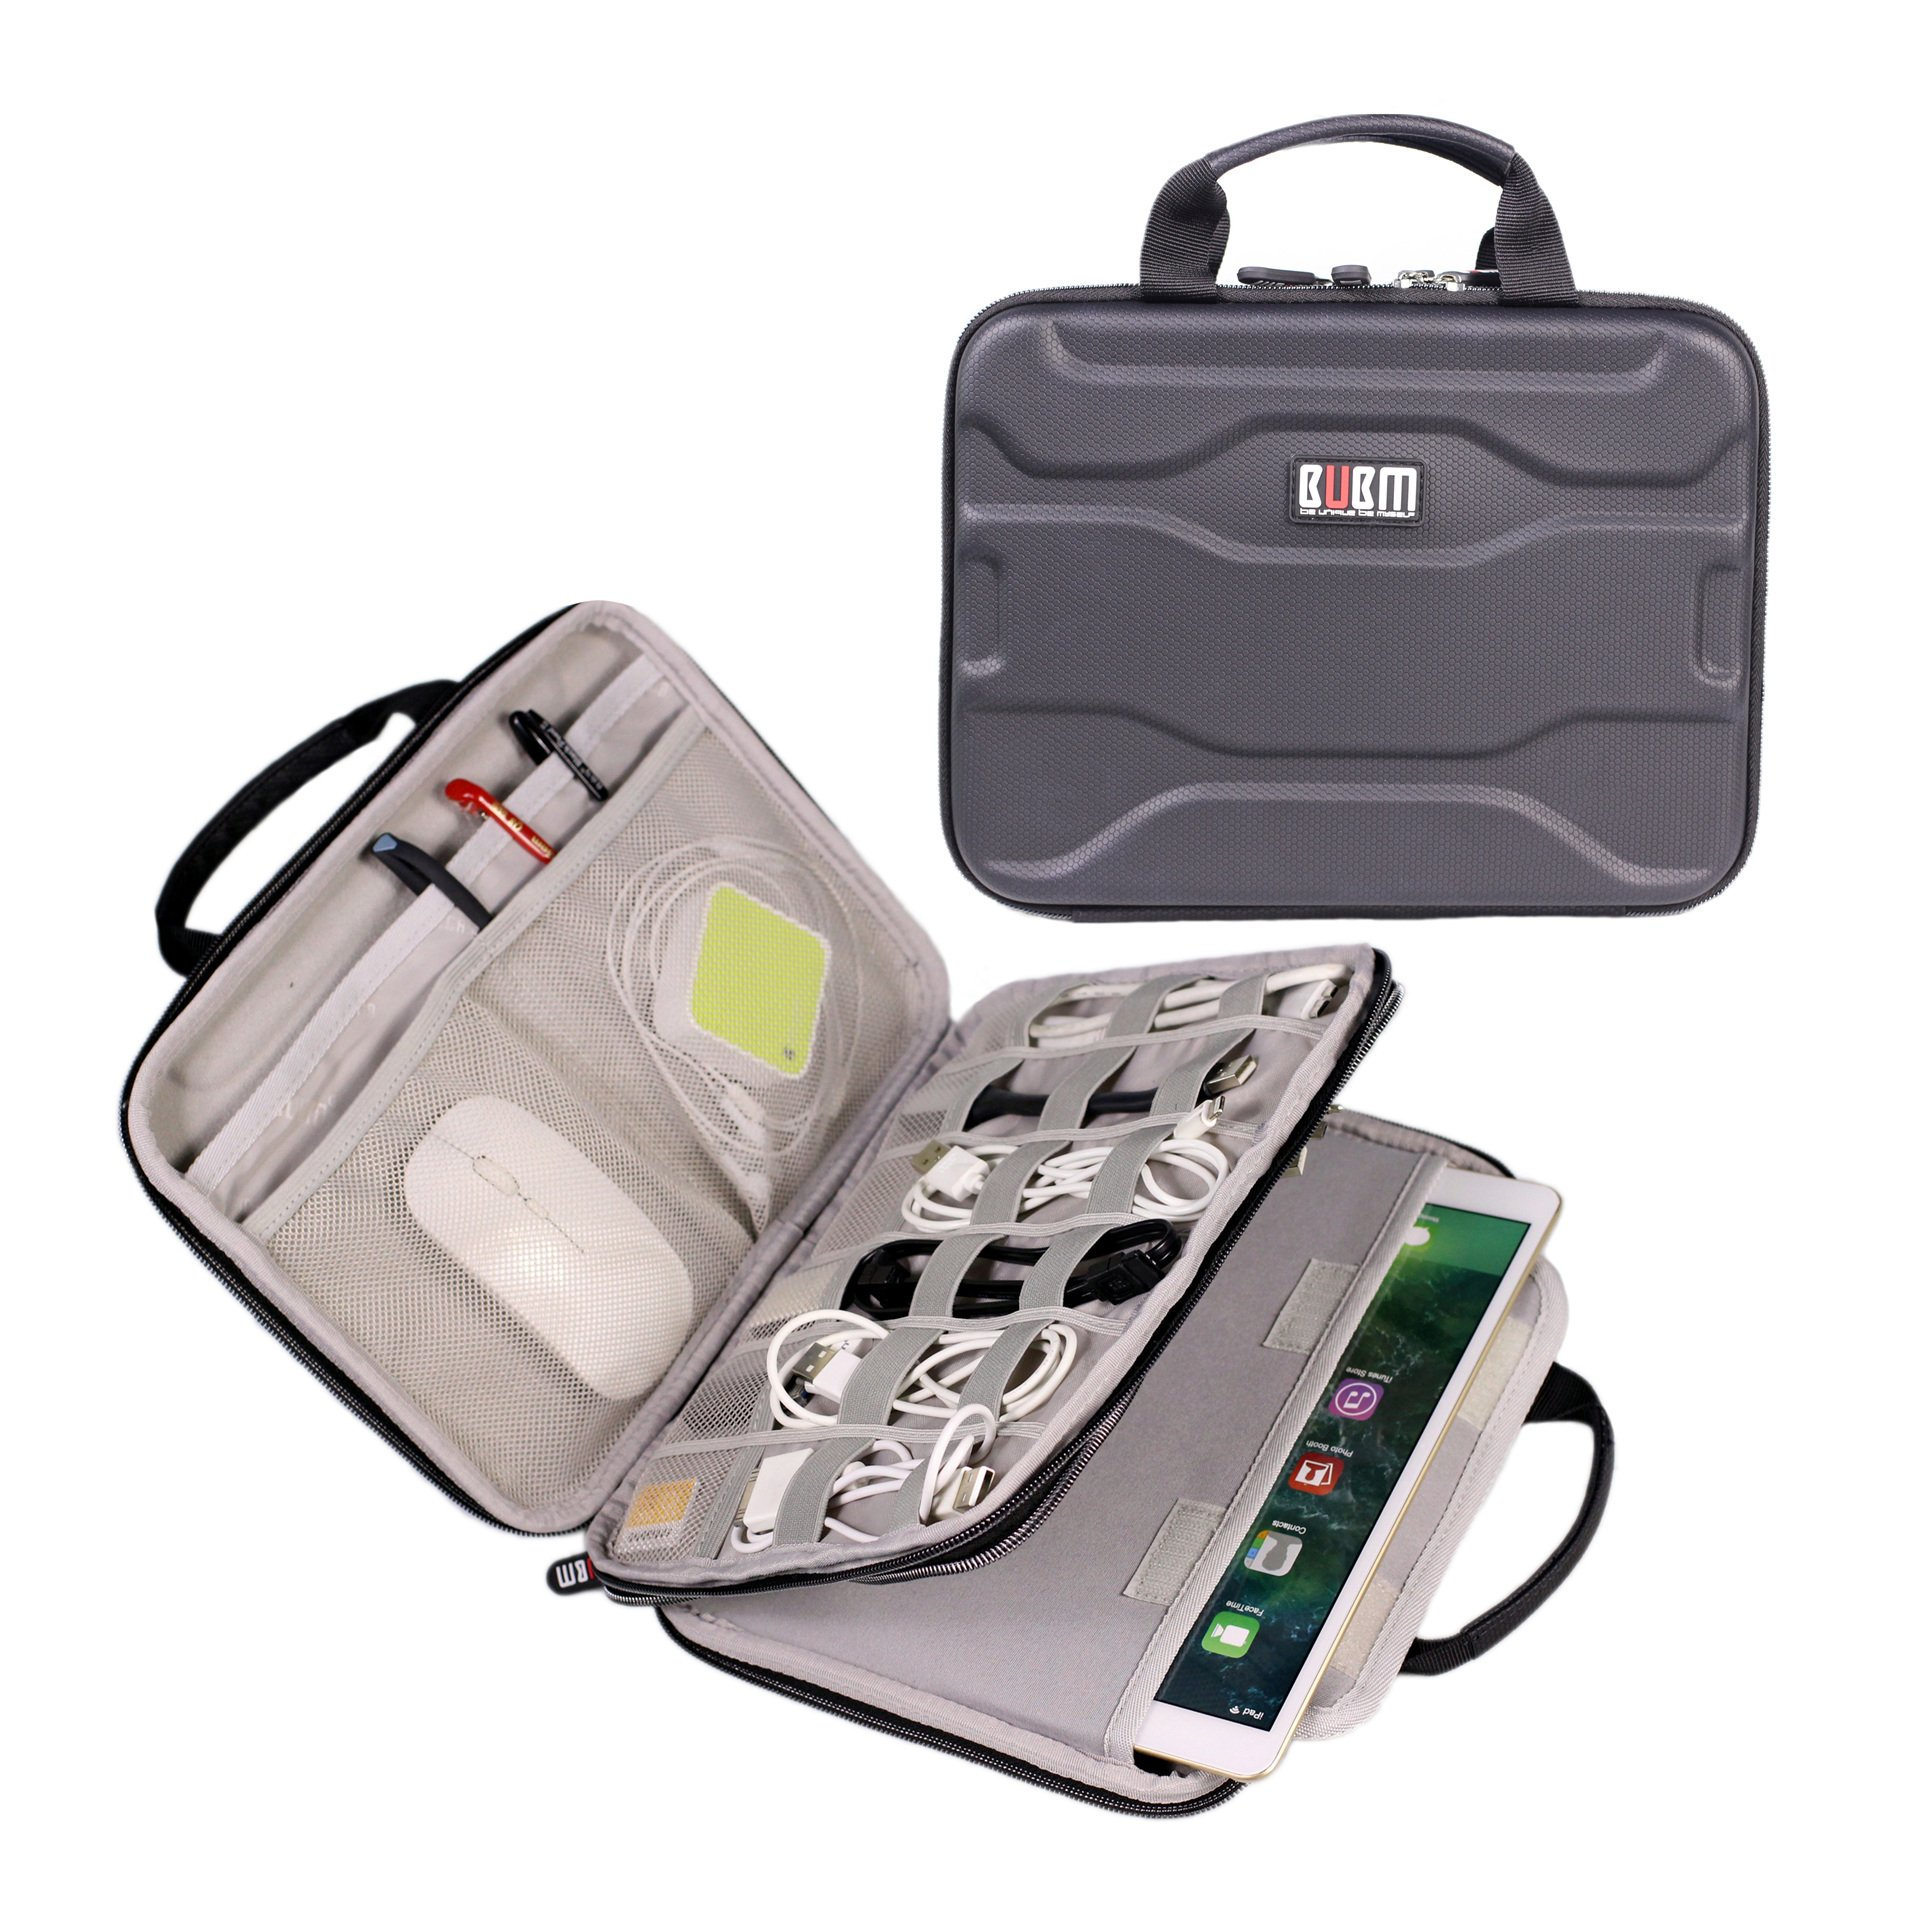 Electronics Organizer Travel Cable Cord Bag Accessories Gadget Gear Storage Cases